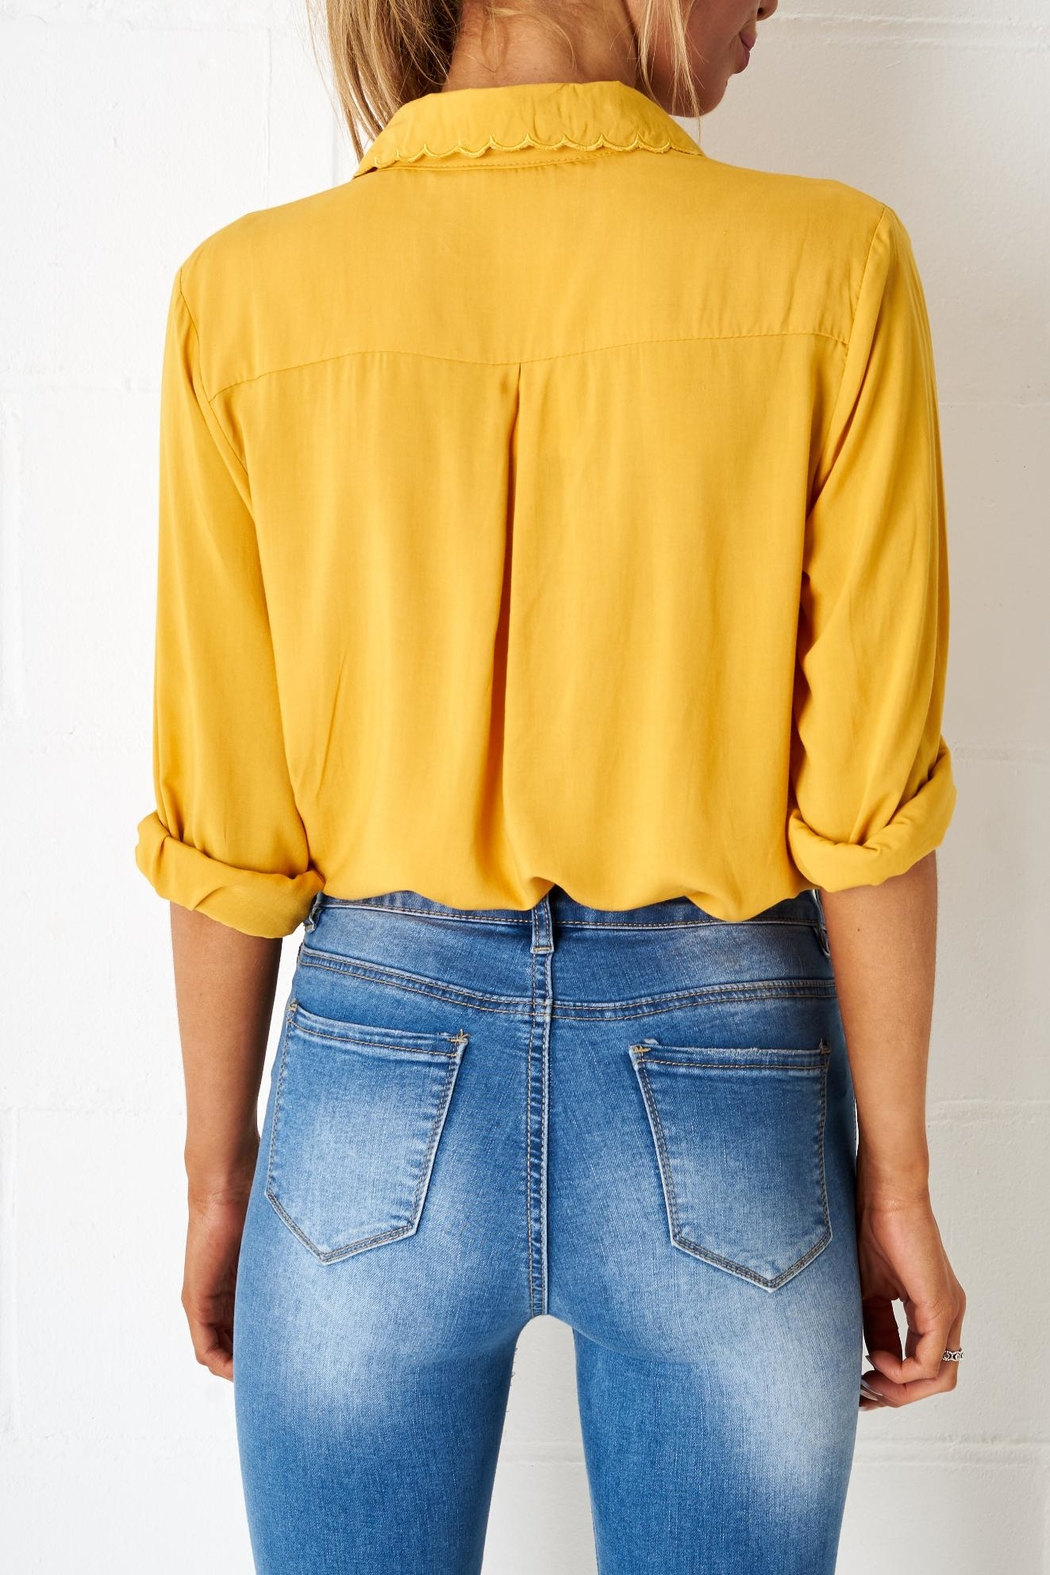 frontrow Yellow Scalloped Blouse - Side Cropped Image